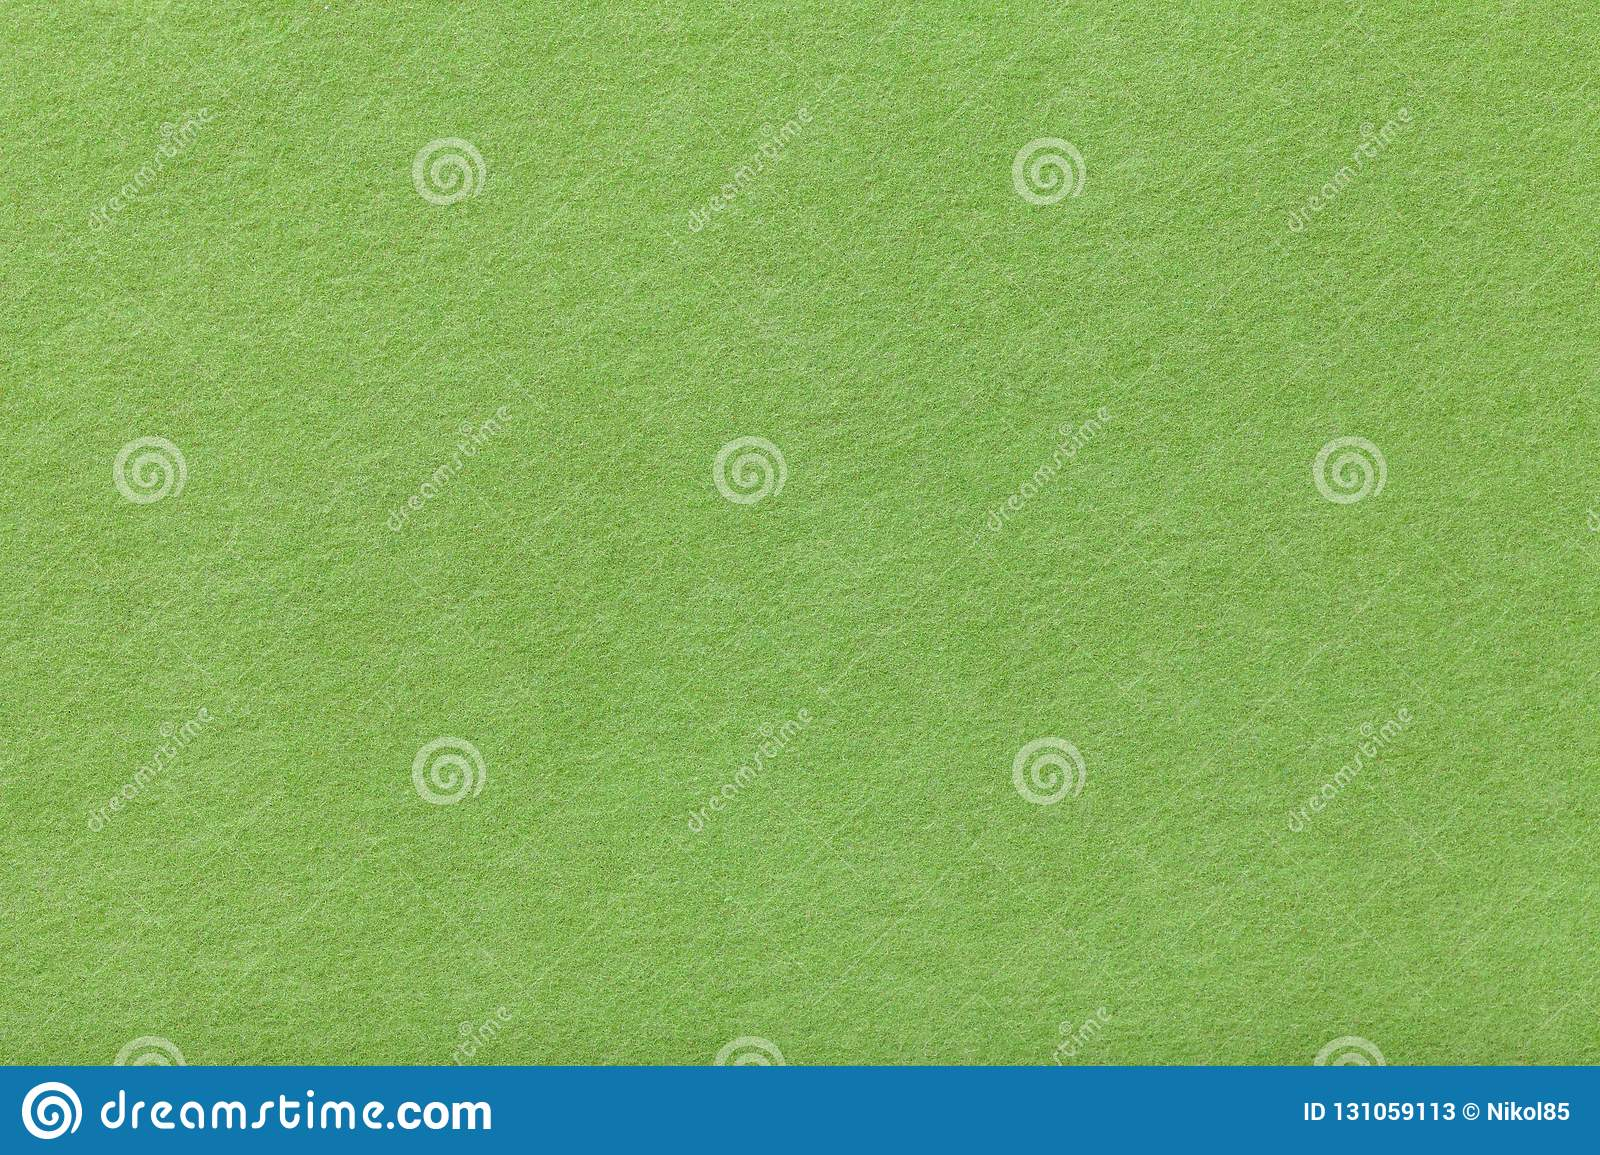 6 292 Green Velvet Texture Photos Free Royalty Free Stock Photos From Dreamstime